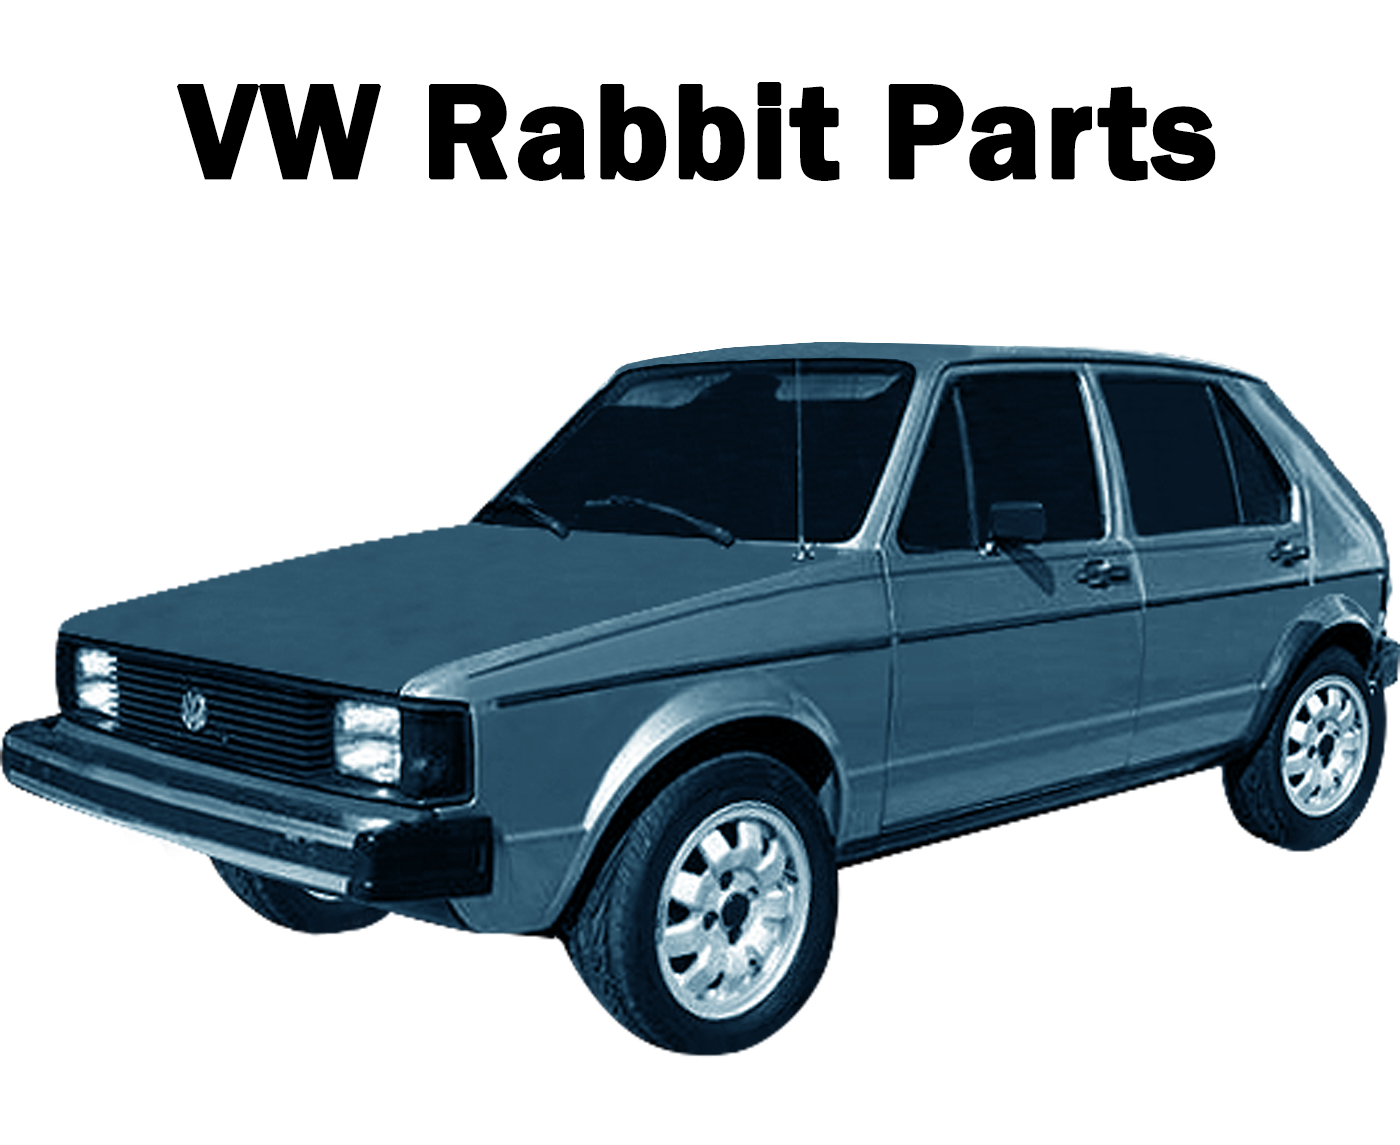 Vw Parts Jbugs Com Volkswagen Rabbit Parts